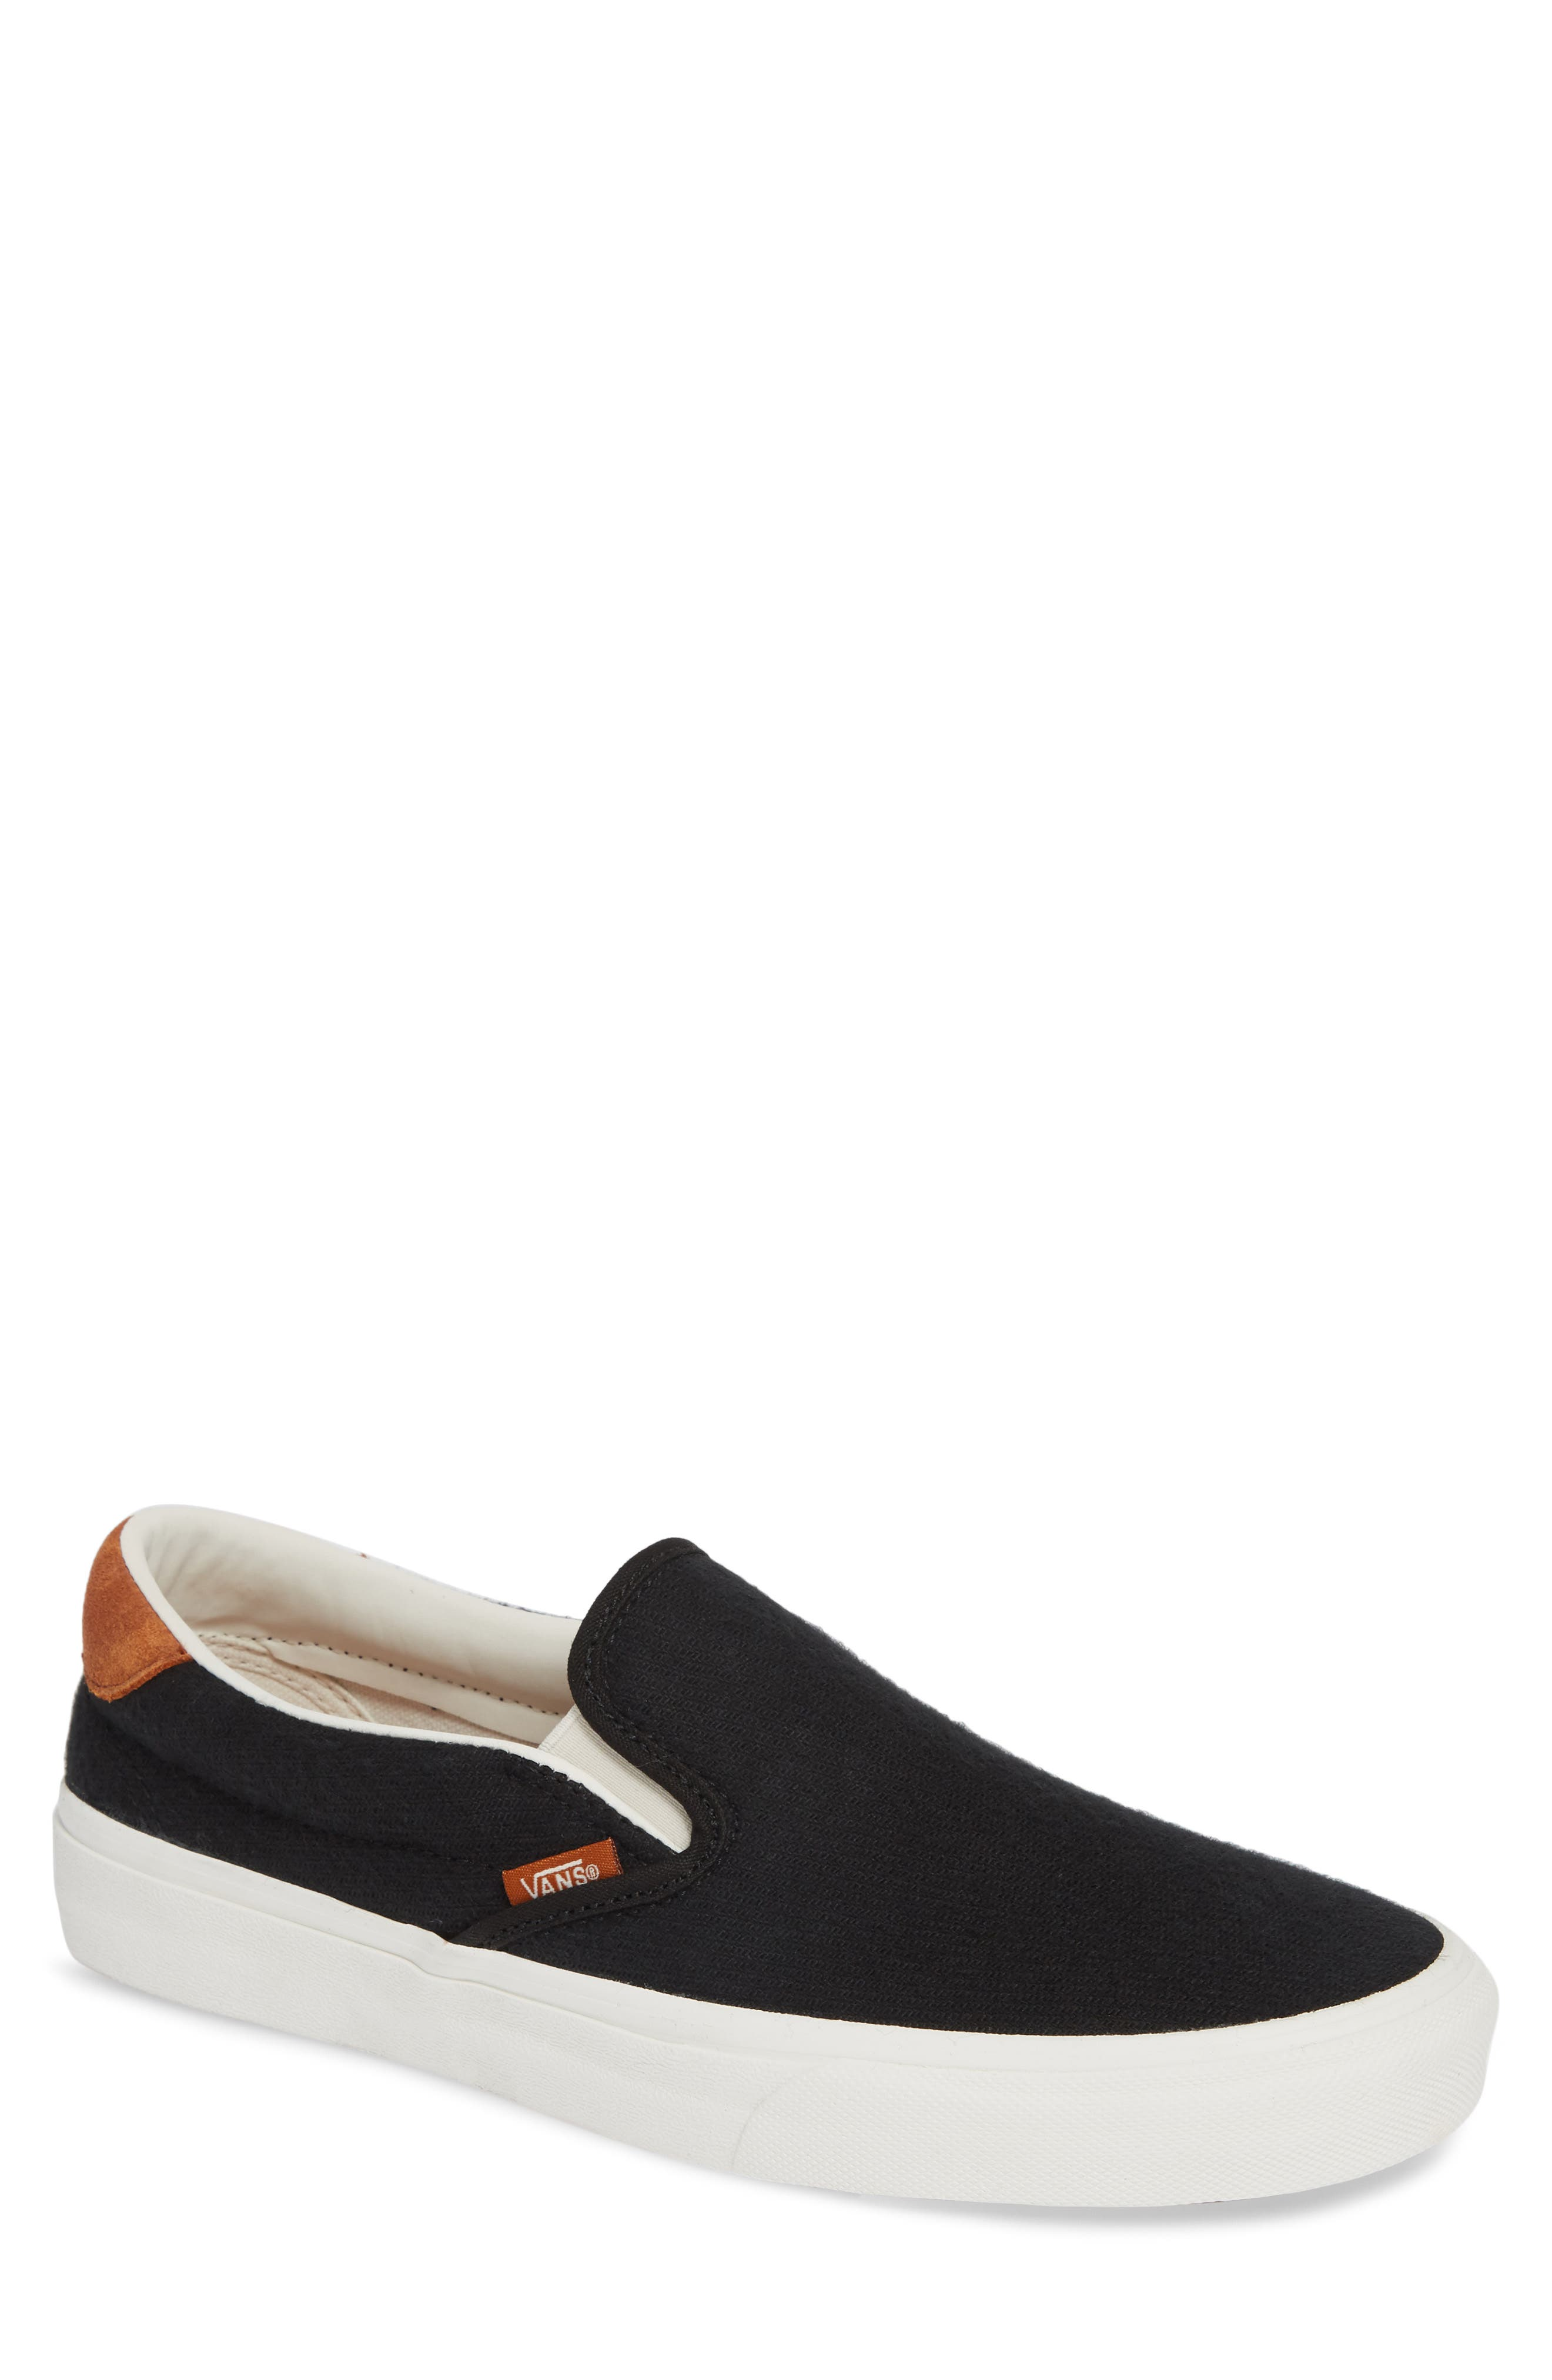 59 Classic Slip-On Sneaker,                             Main thumbnail 1, color,                             BLACK FLANNEL SUEDE